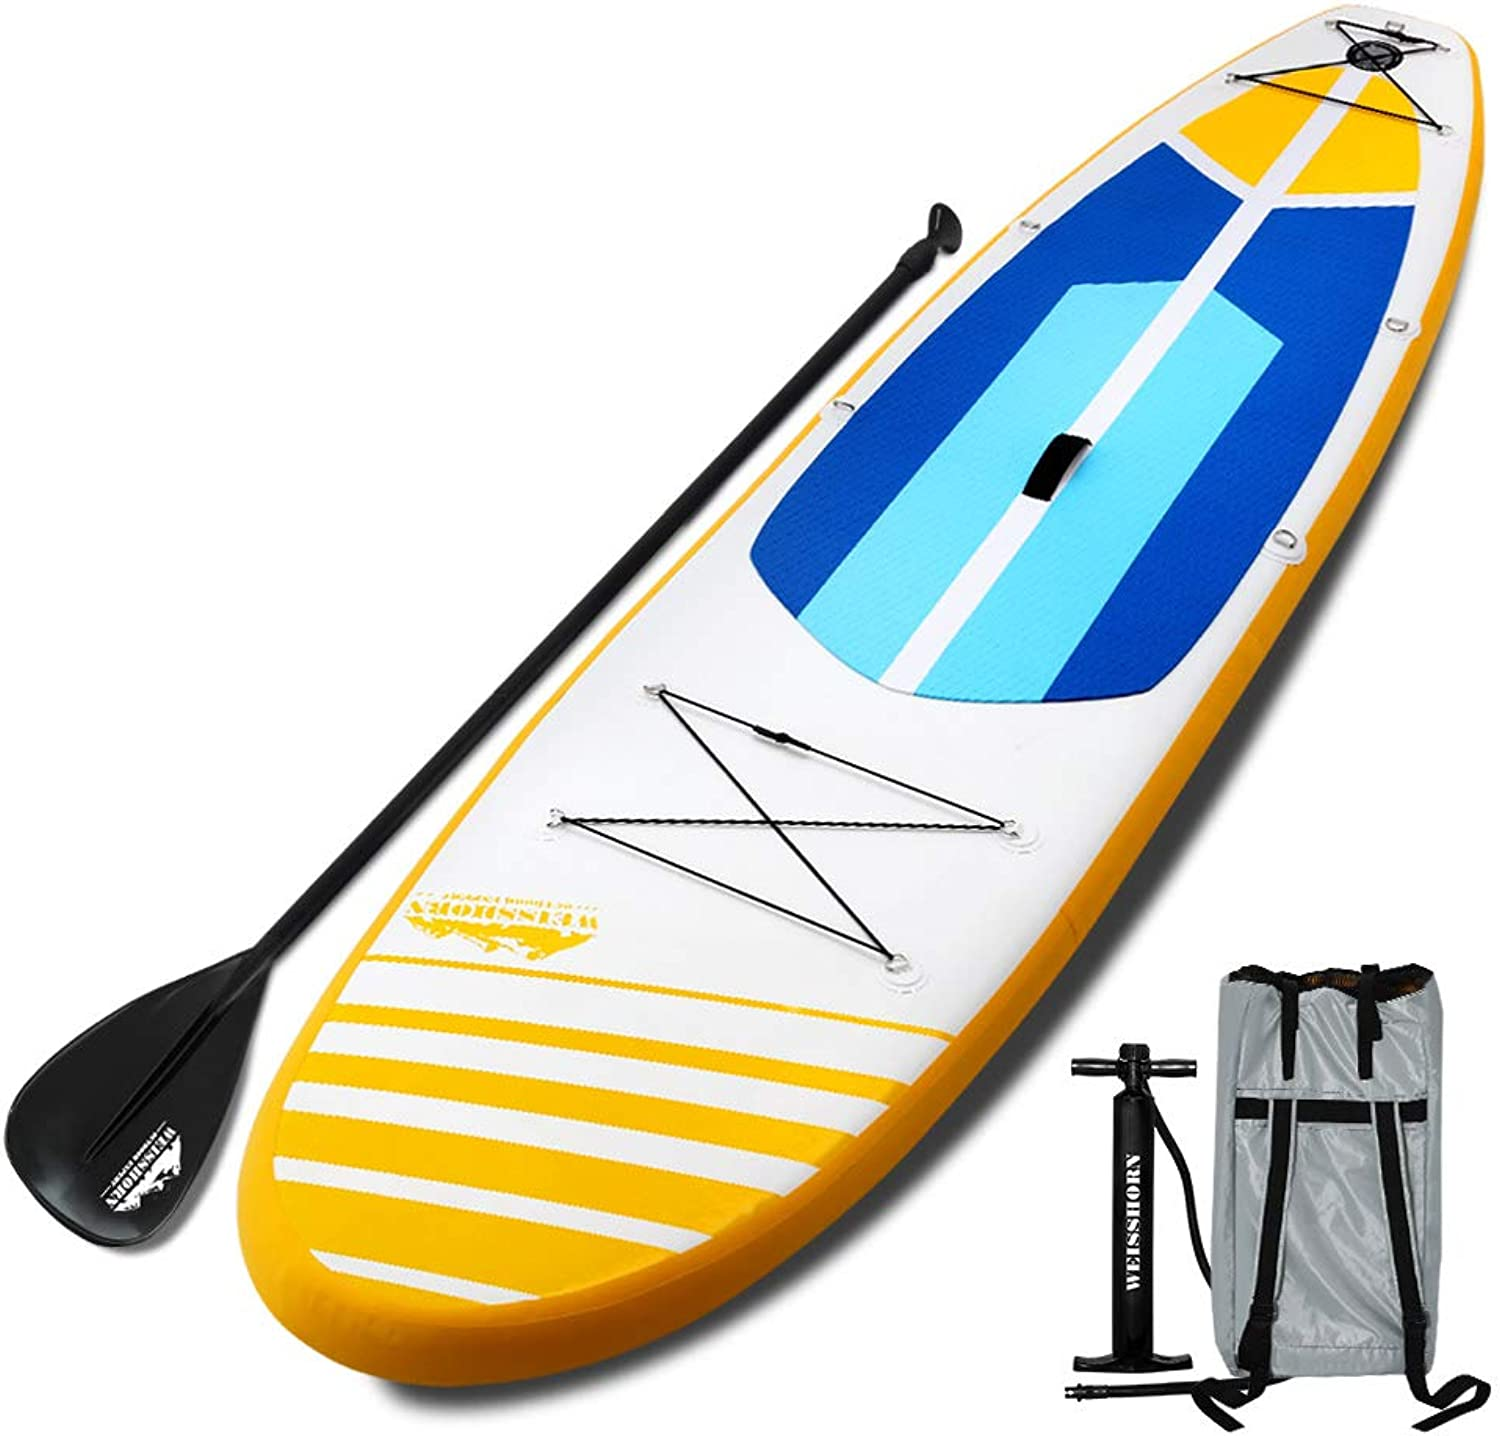 WEISSHORN 11FT Kayak with Pump Carry Bag Aluminium OarYellow and blueee